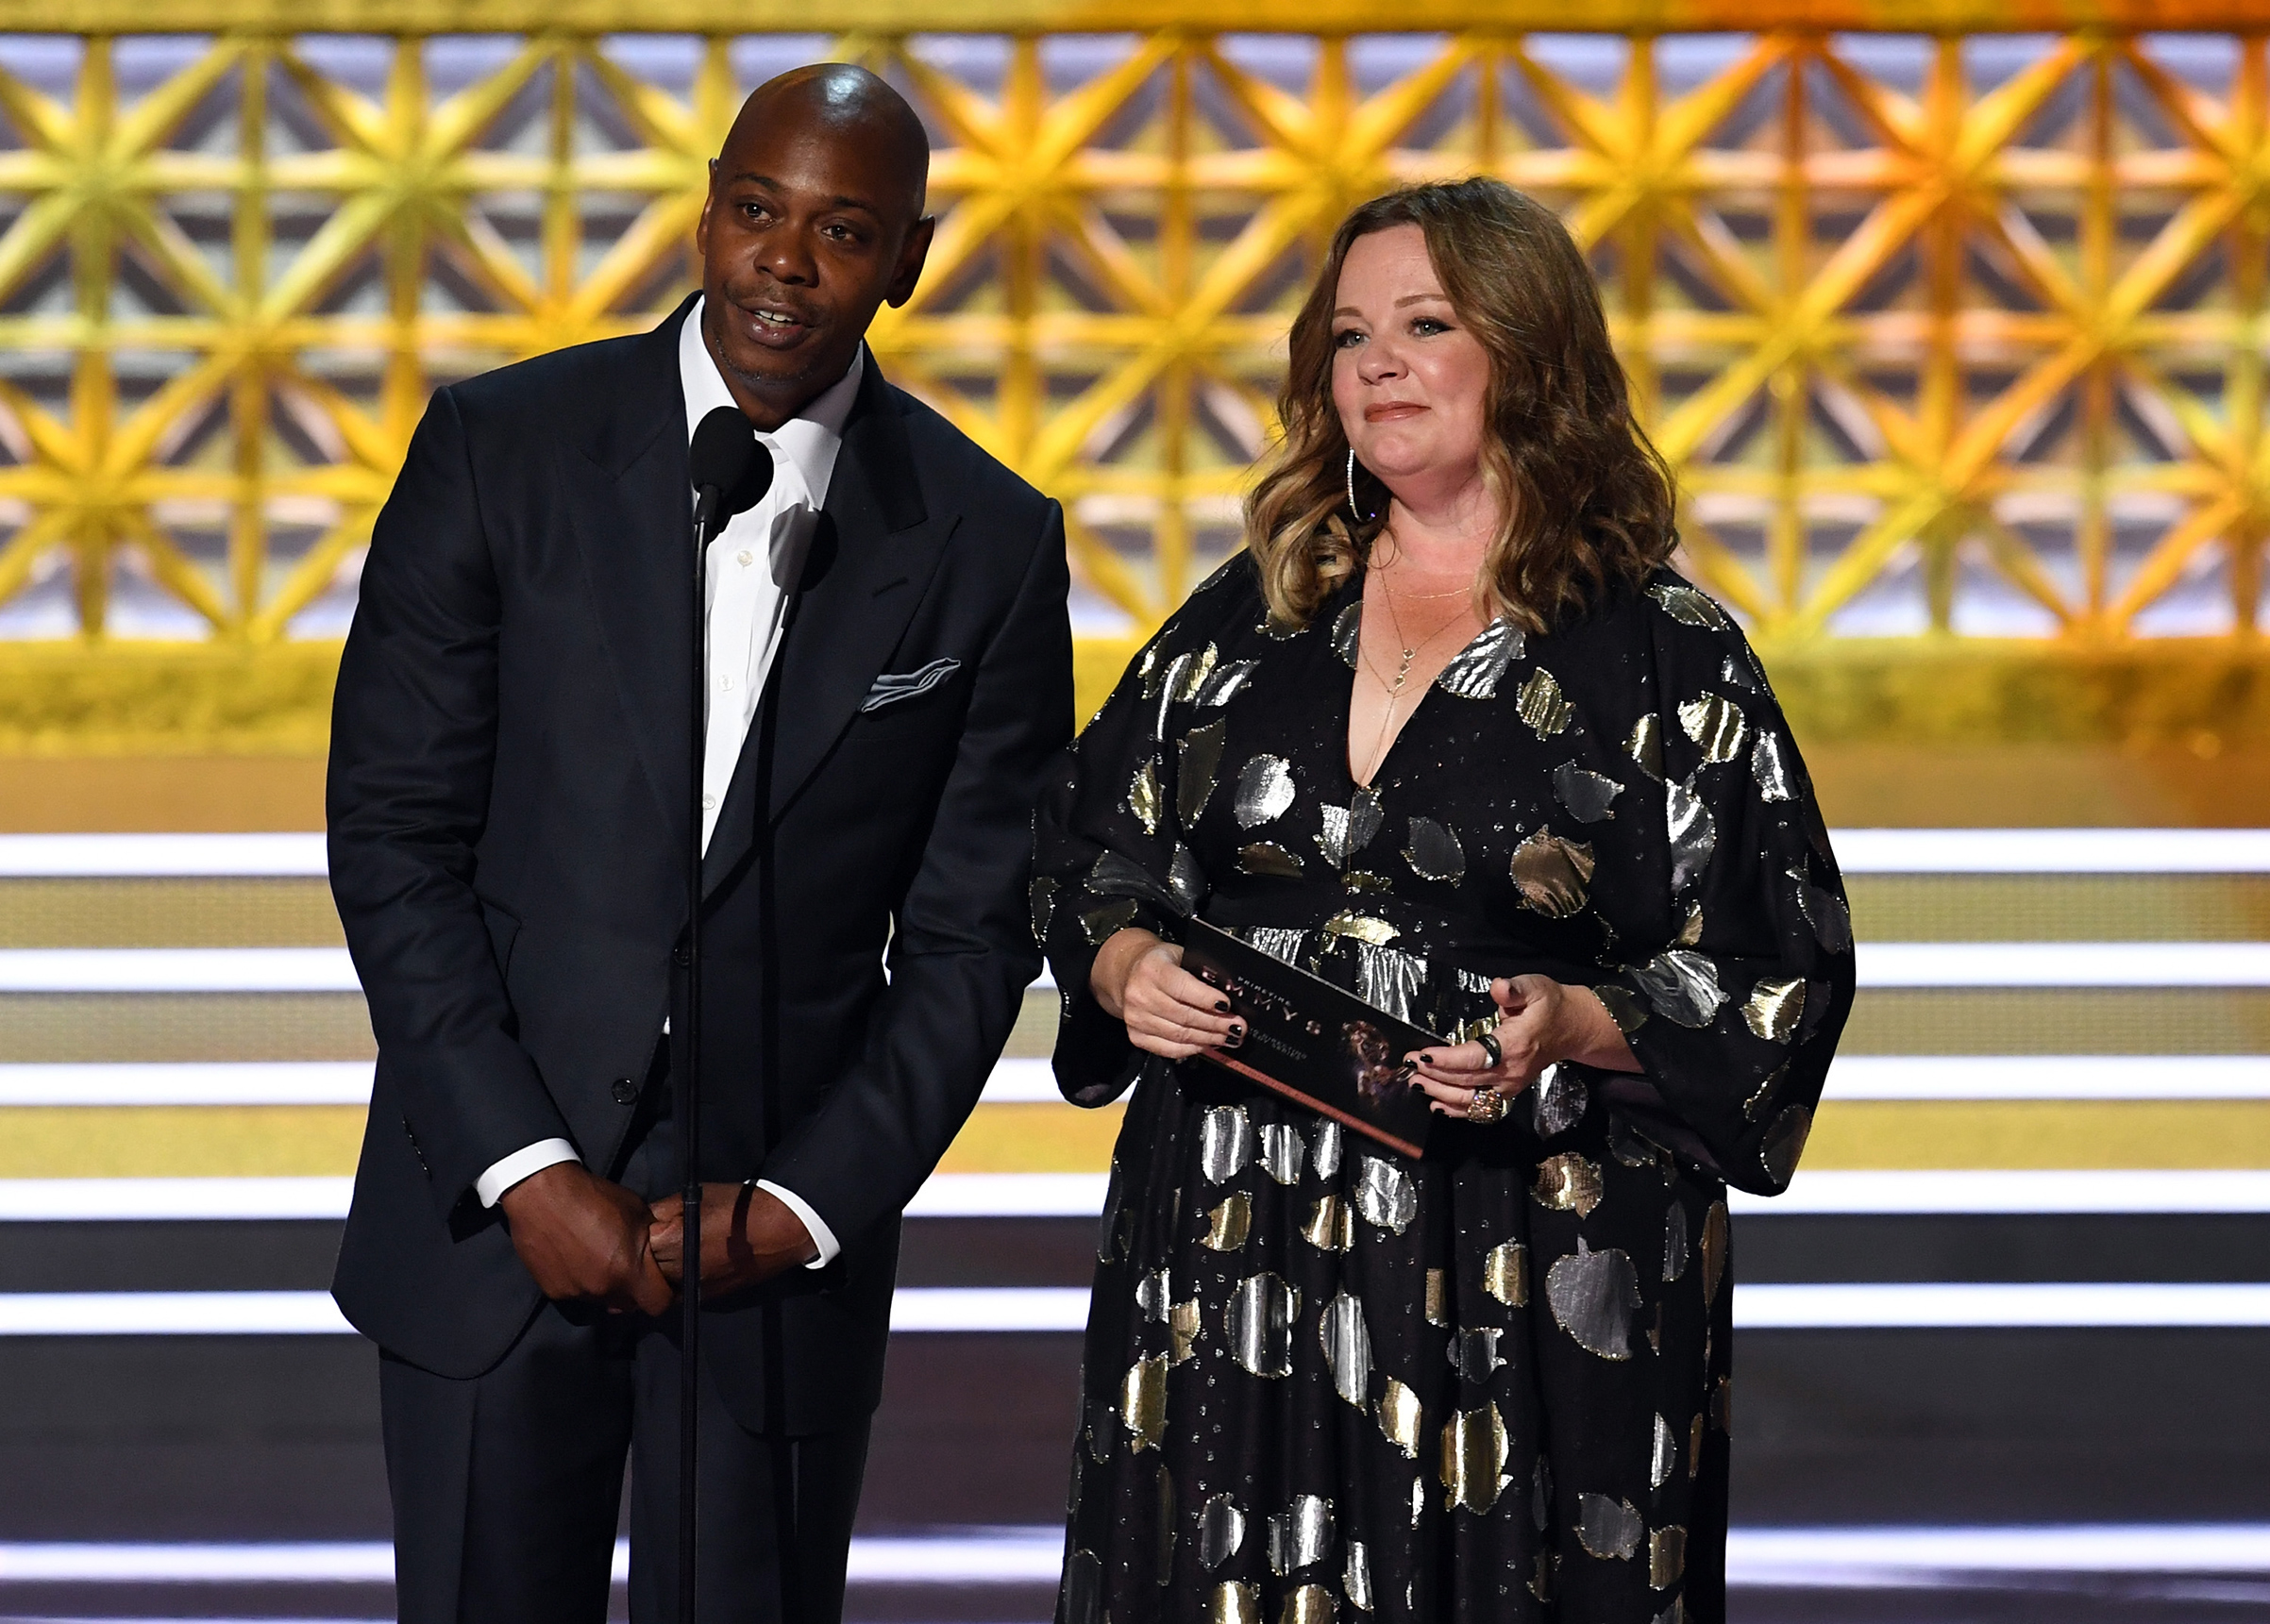 Comedian Dave Chappelle (L) and actor Melissa McCarthy speak onstage during the 69th Annual Primetime Emmy Awards at Microsoft Theater on Sept. 17, 2017 in Los Angeles.